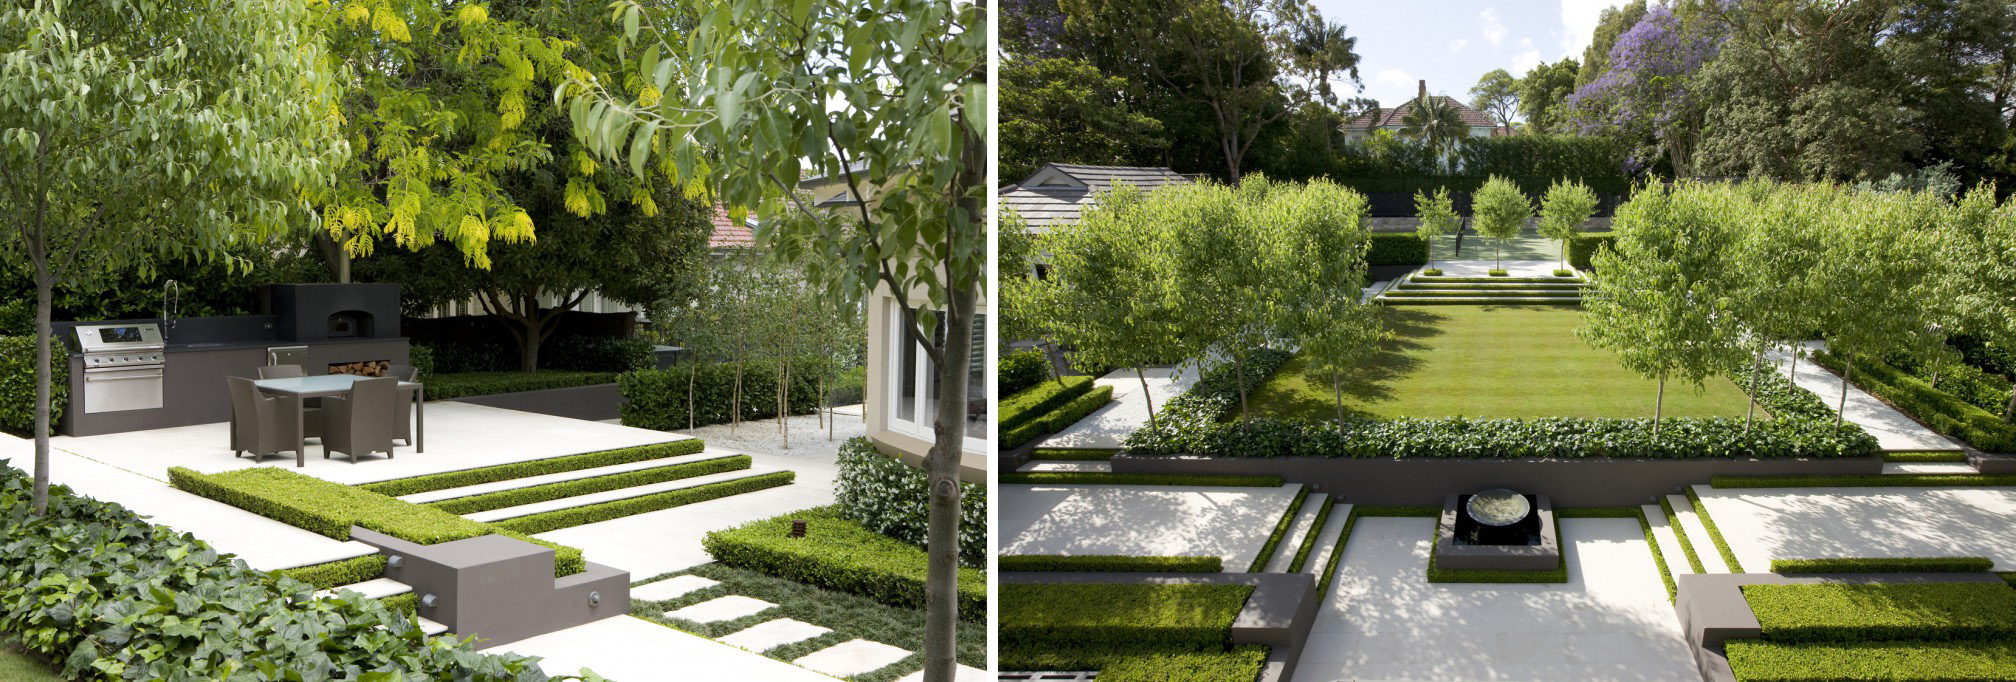 landscape modern garden design - photo #16